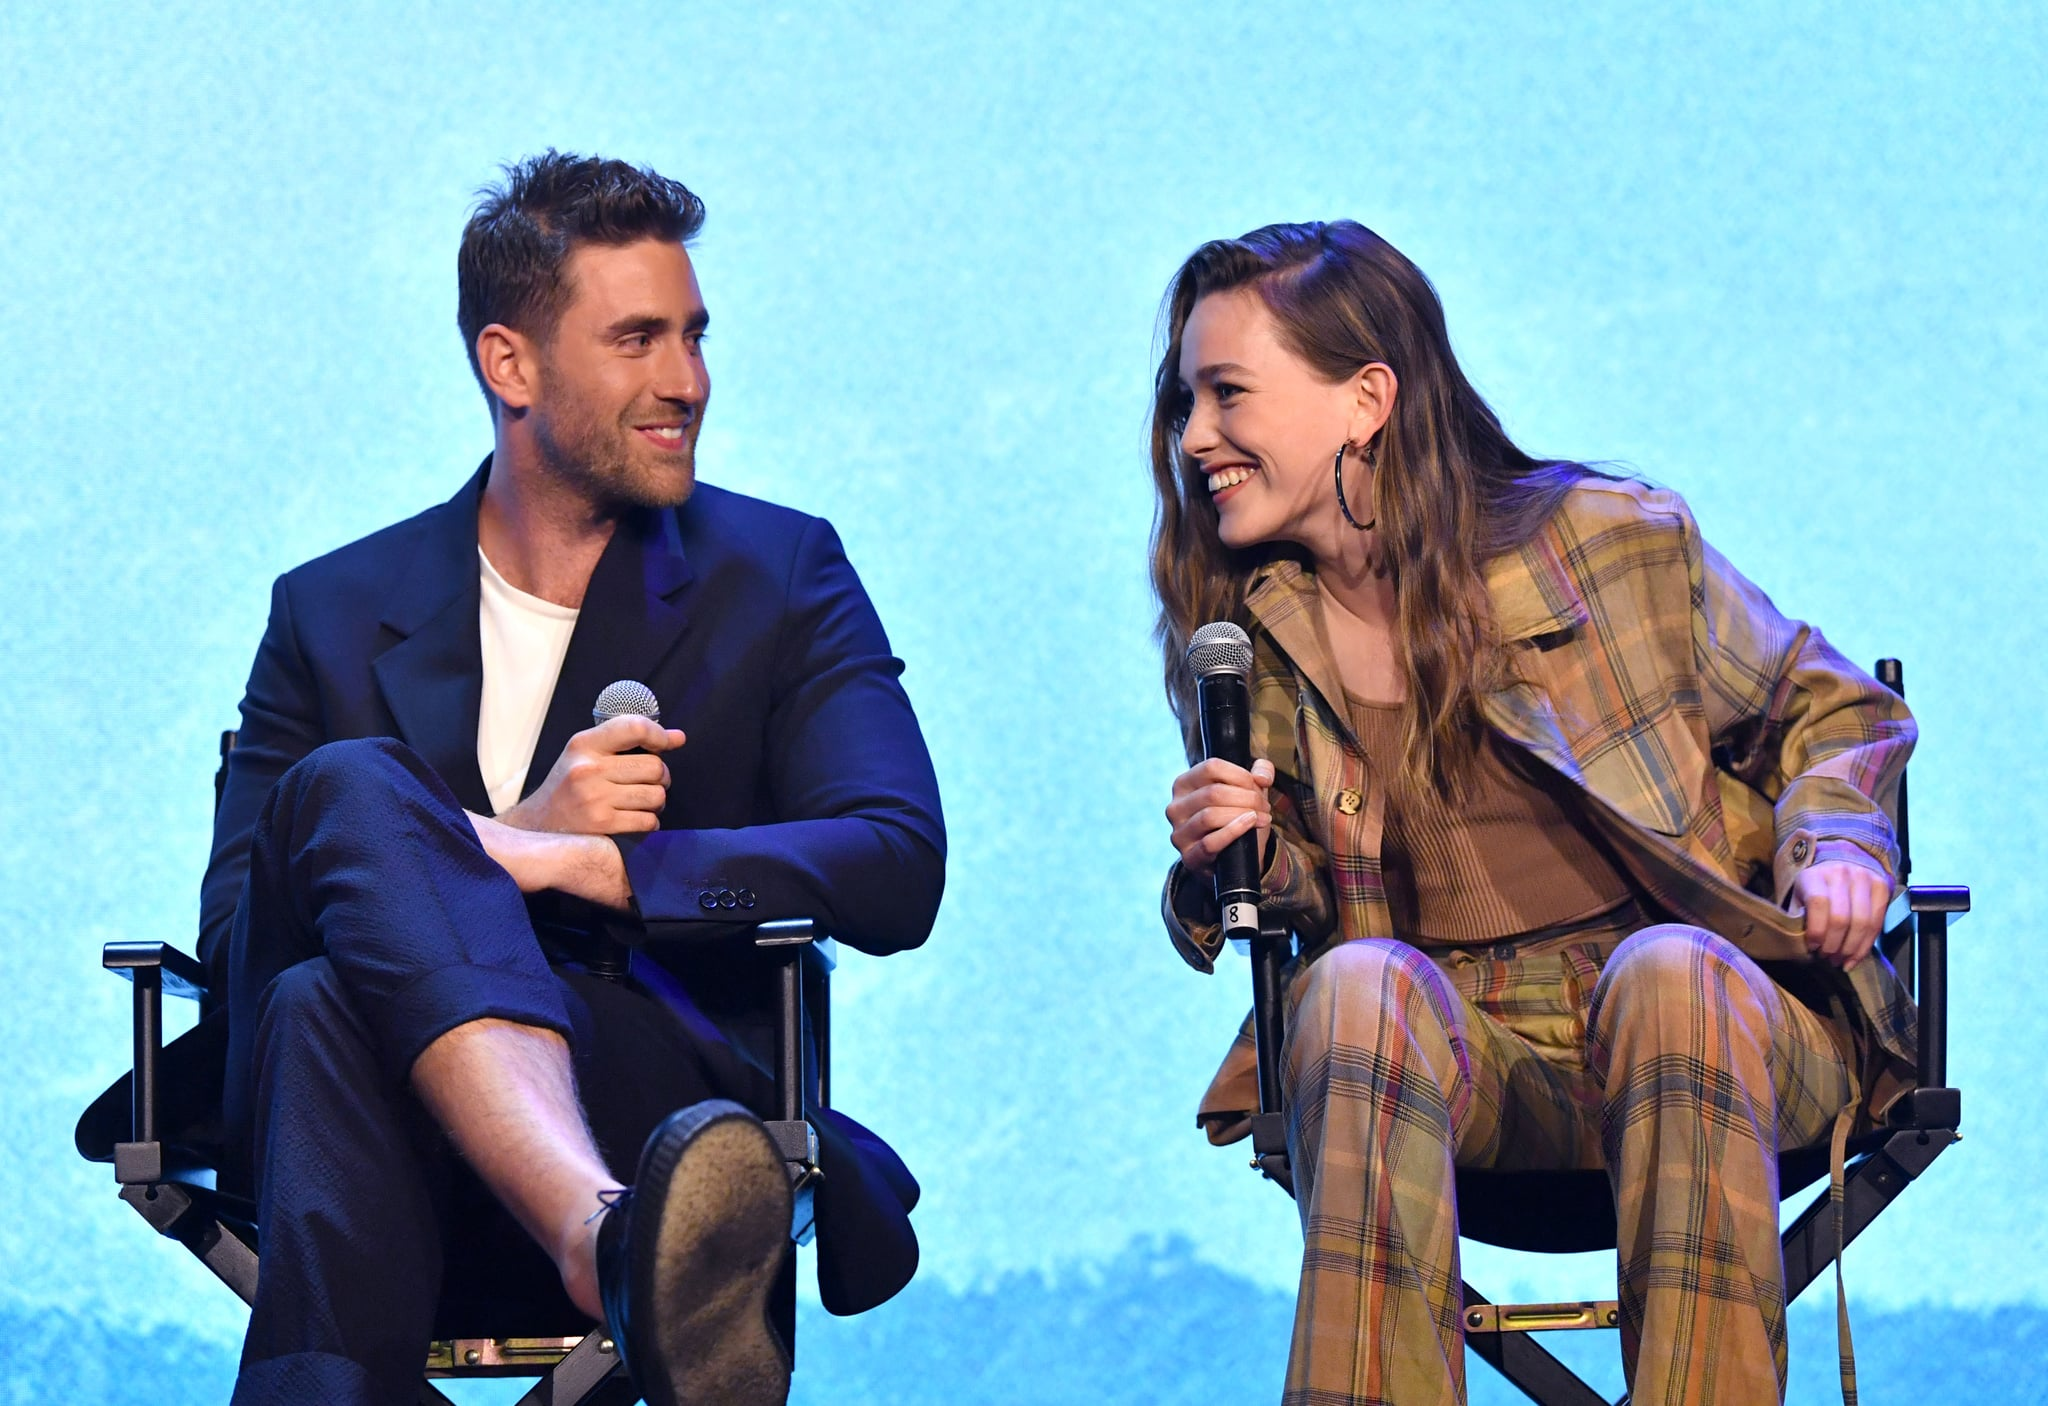 LOS ANGELES, CALIFORNIA - MAY 21: Oliver Jackson-Cohen and Victoria Pedretti speak onstage at the Netflix FYSEE Event for